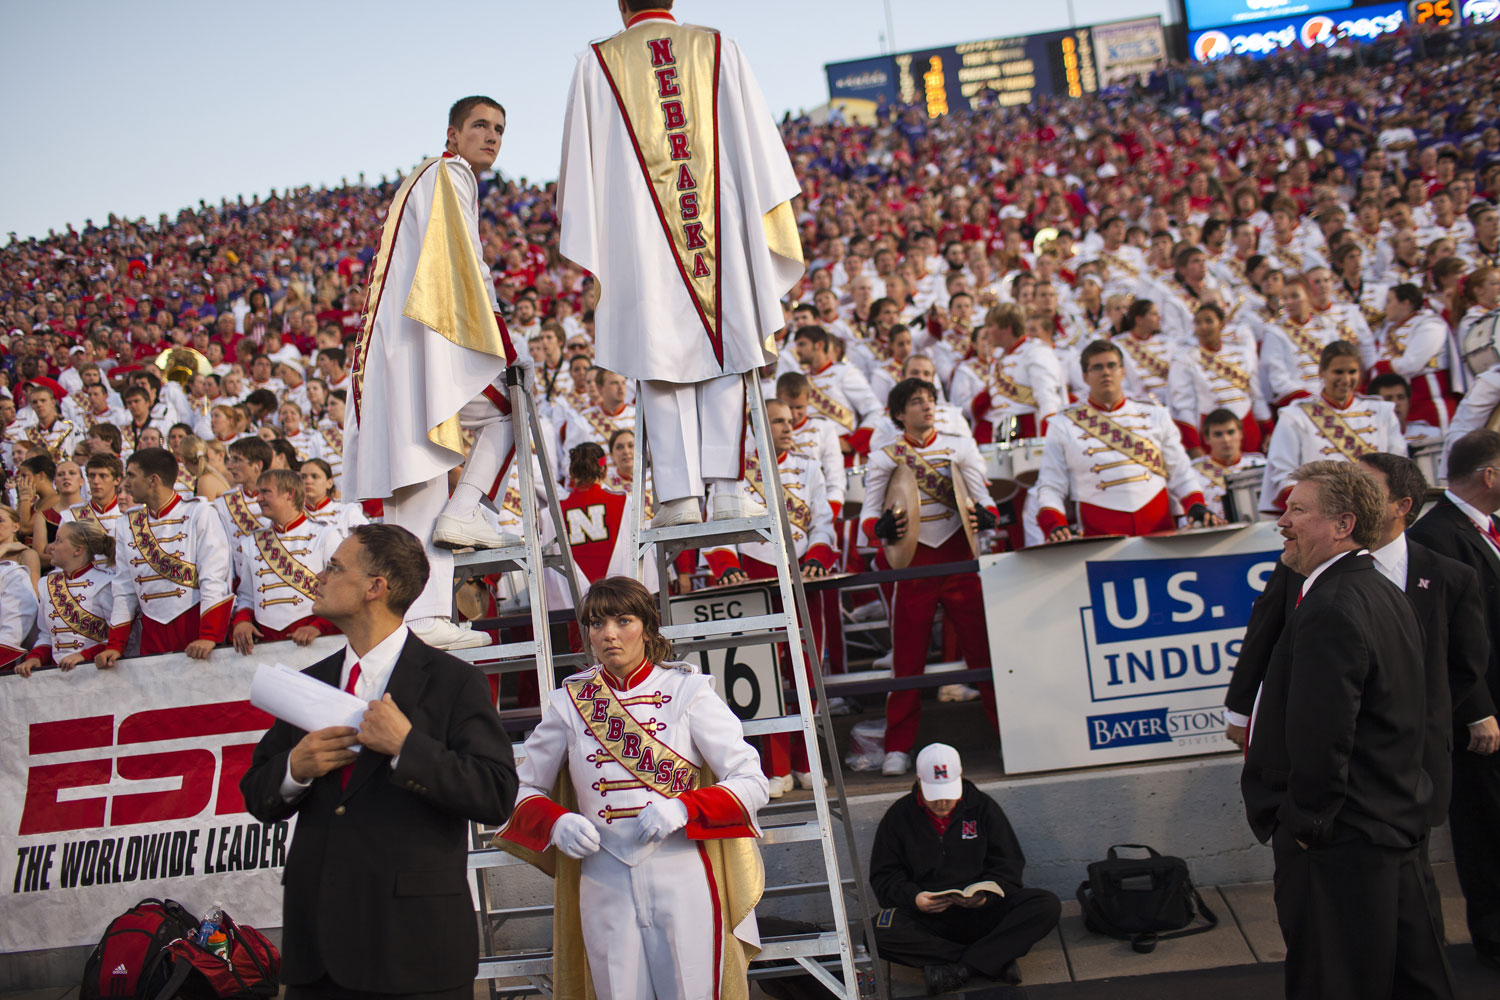 Nebraska's marching band prepares to play before the October 2010 Huskers game with Kansas State in Manhattan, Kansas.